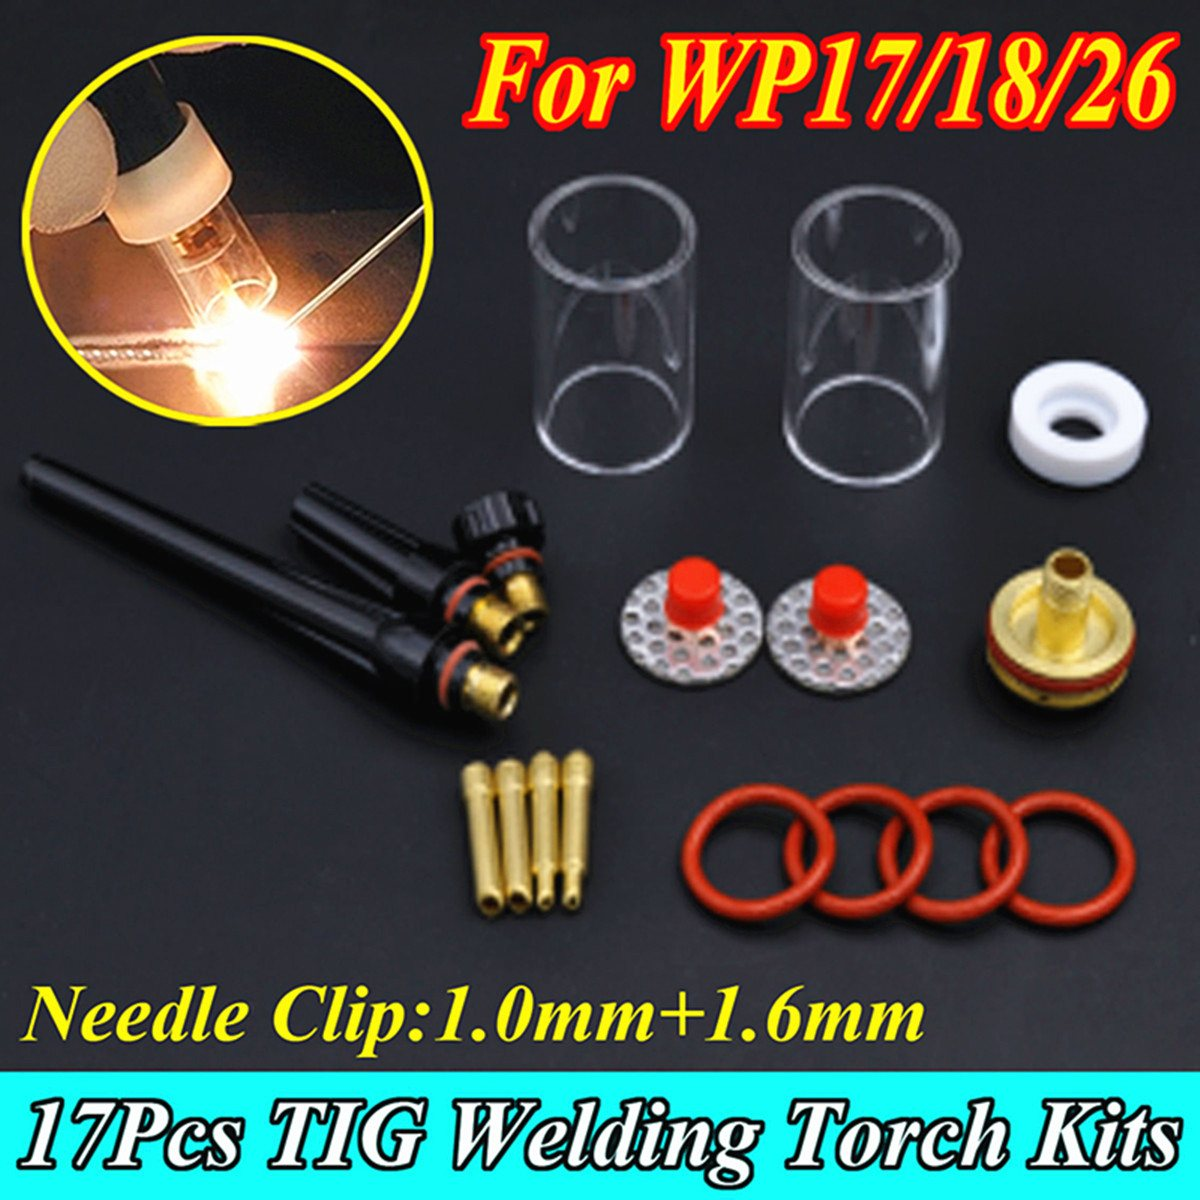 New 17Pcs TIG Welding Torch Stubby Collet Gas Lens Glass Nozzle Pryex Cup Kit with Heat-Resistant O-rings For WP-17/18/26 Series wp 17f sr 17f tig welding torch complete 17feet 5meter soldering iron flexible